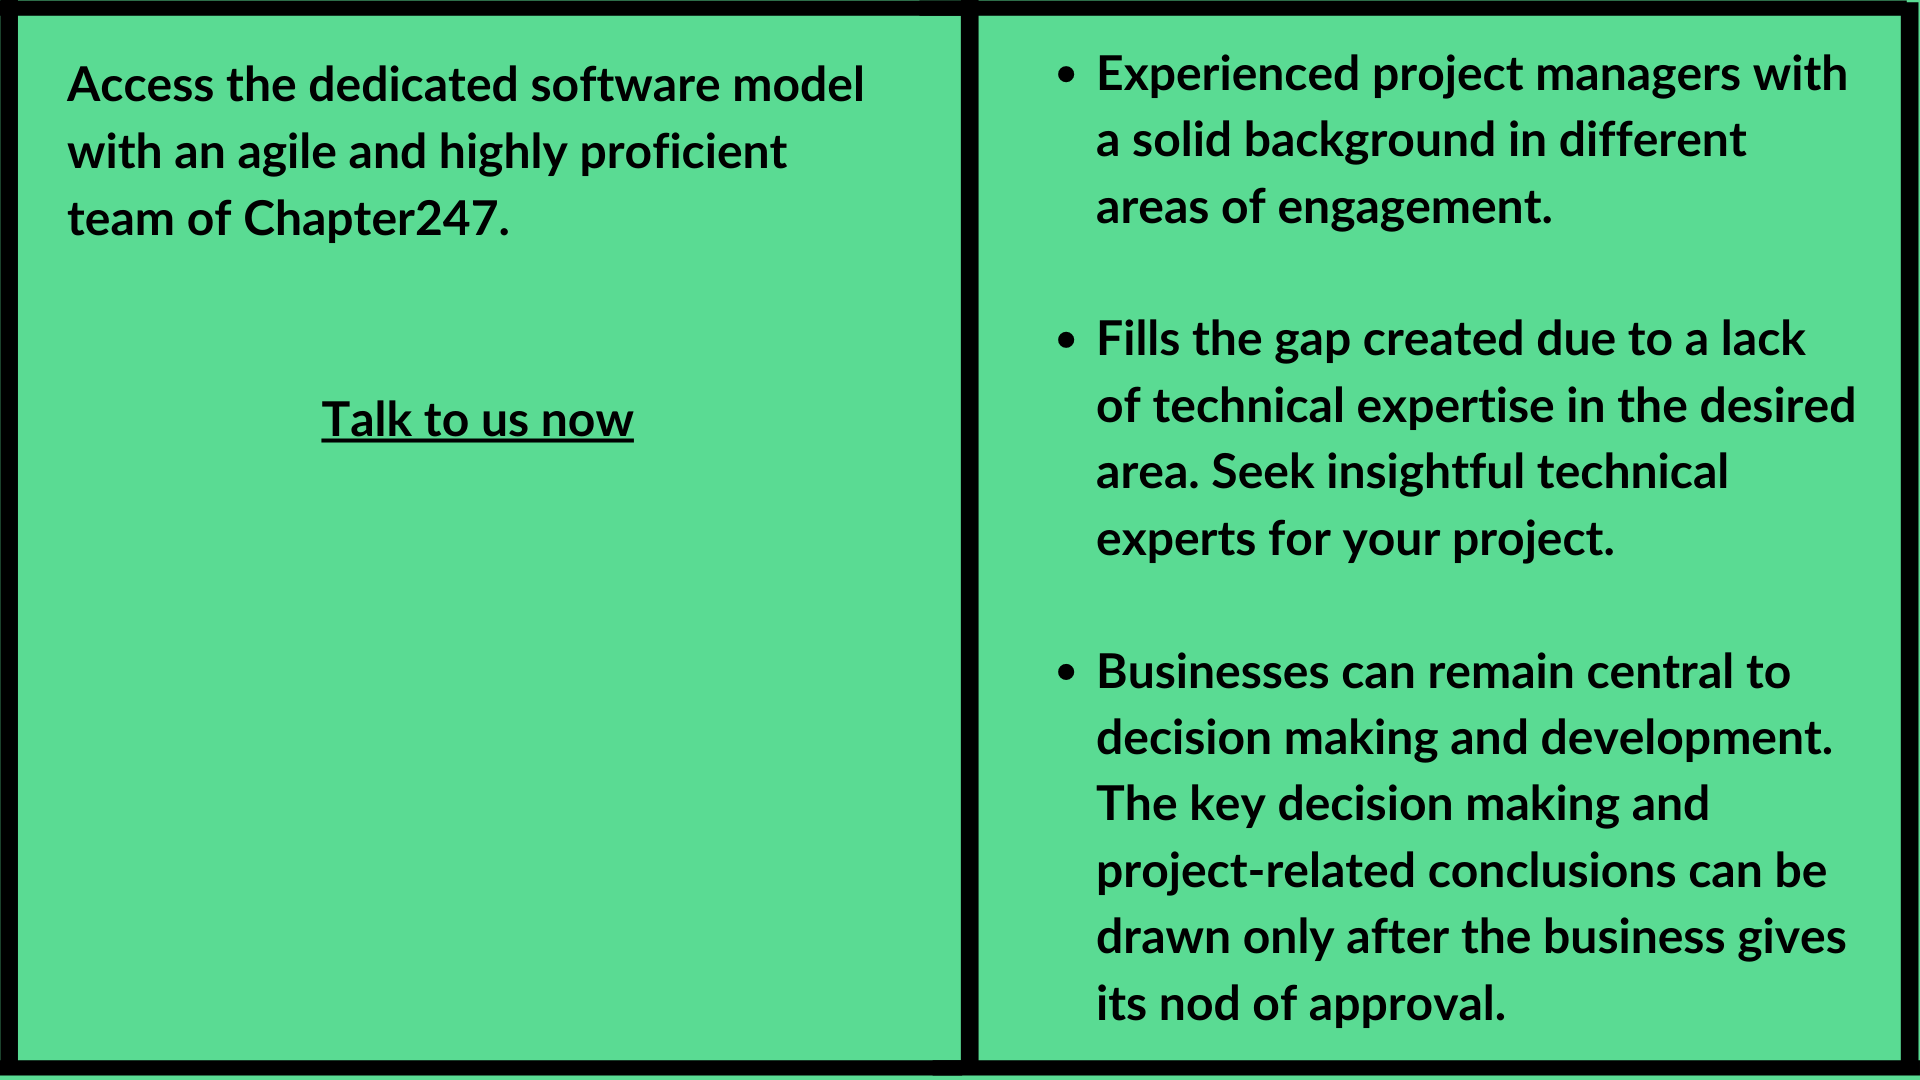 software model with an agile and highly proficient team